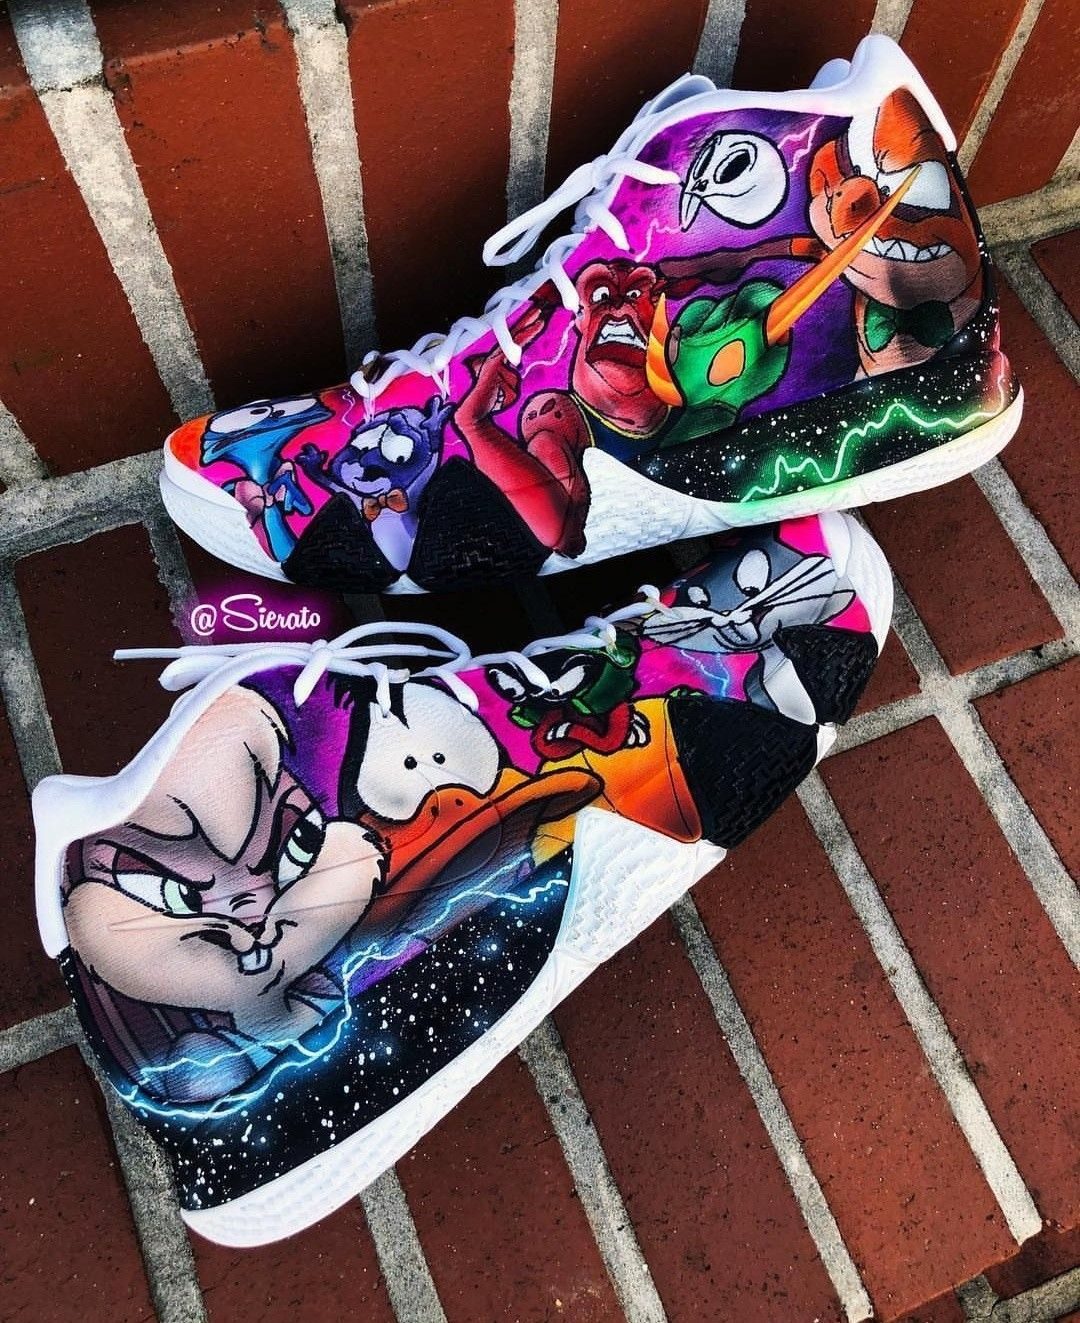 e31c7ca30d7 Looney tunes Kyrie s...are you a fan of thes custom painted Kyrie s done